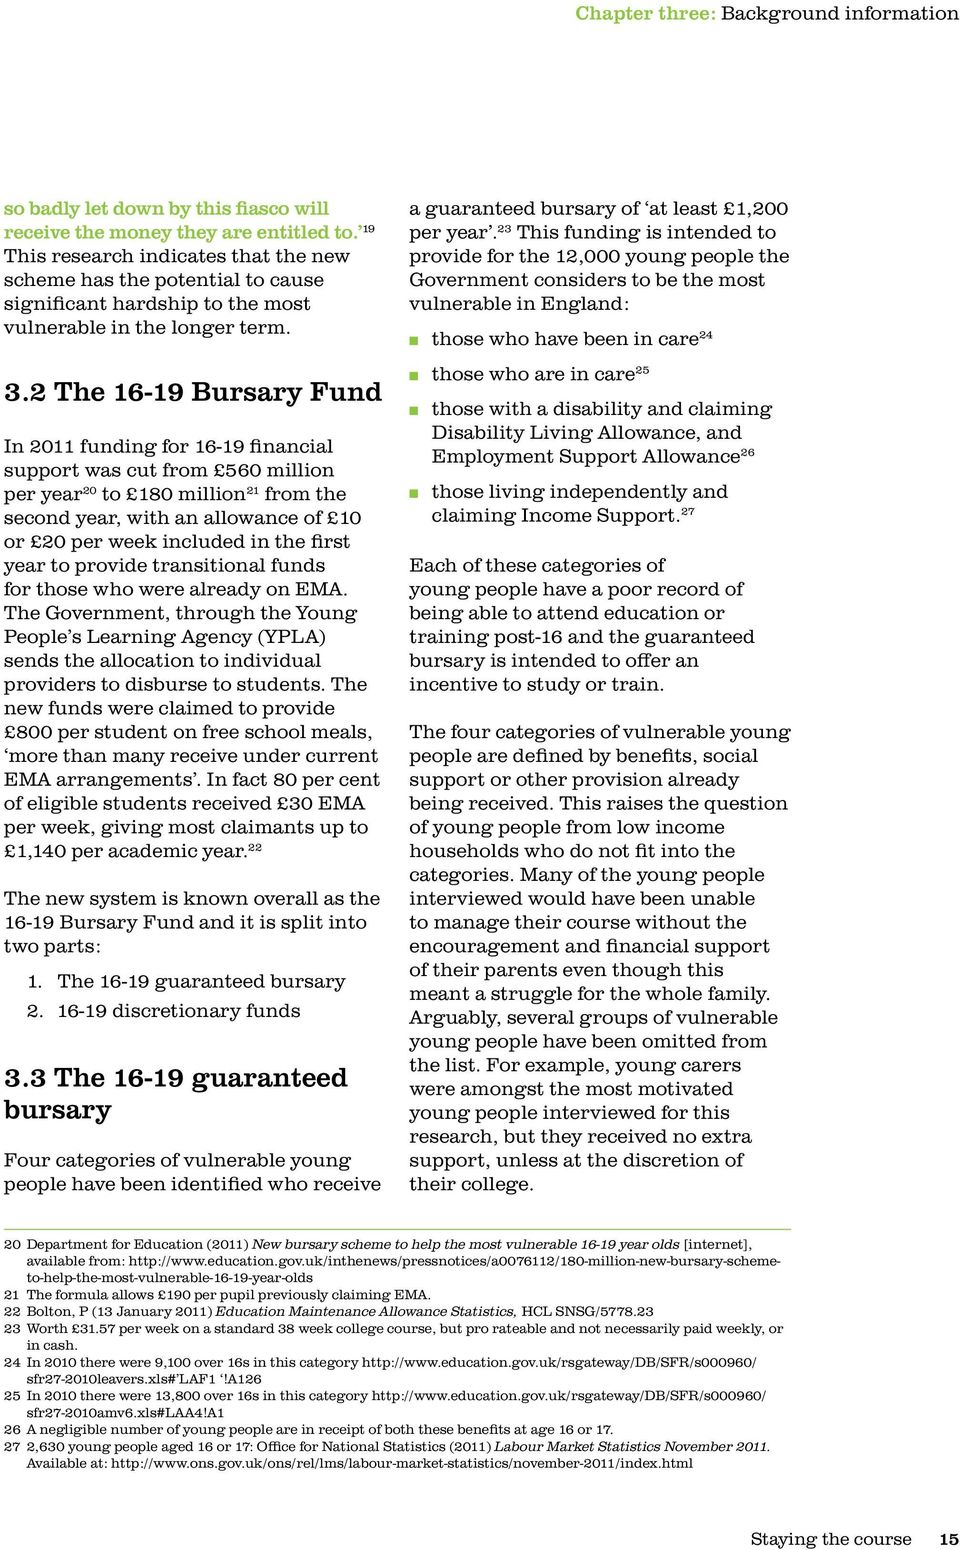 2 The 16-19 Bursary Fund In 2011 funding for 16-19 financial support was cut from 560 million per year 20 to 180 million 21 from the second year, with an allowance of 10 or 20 per week included in